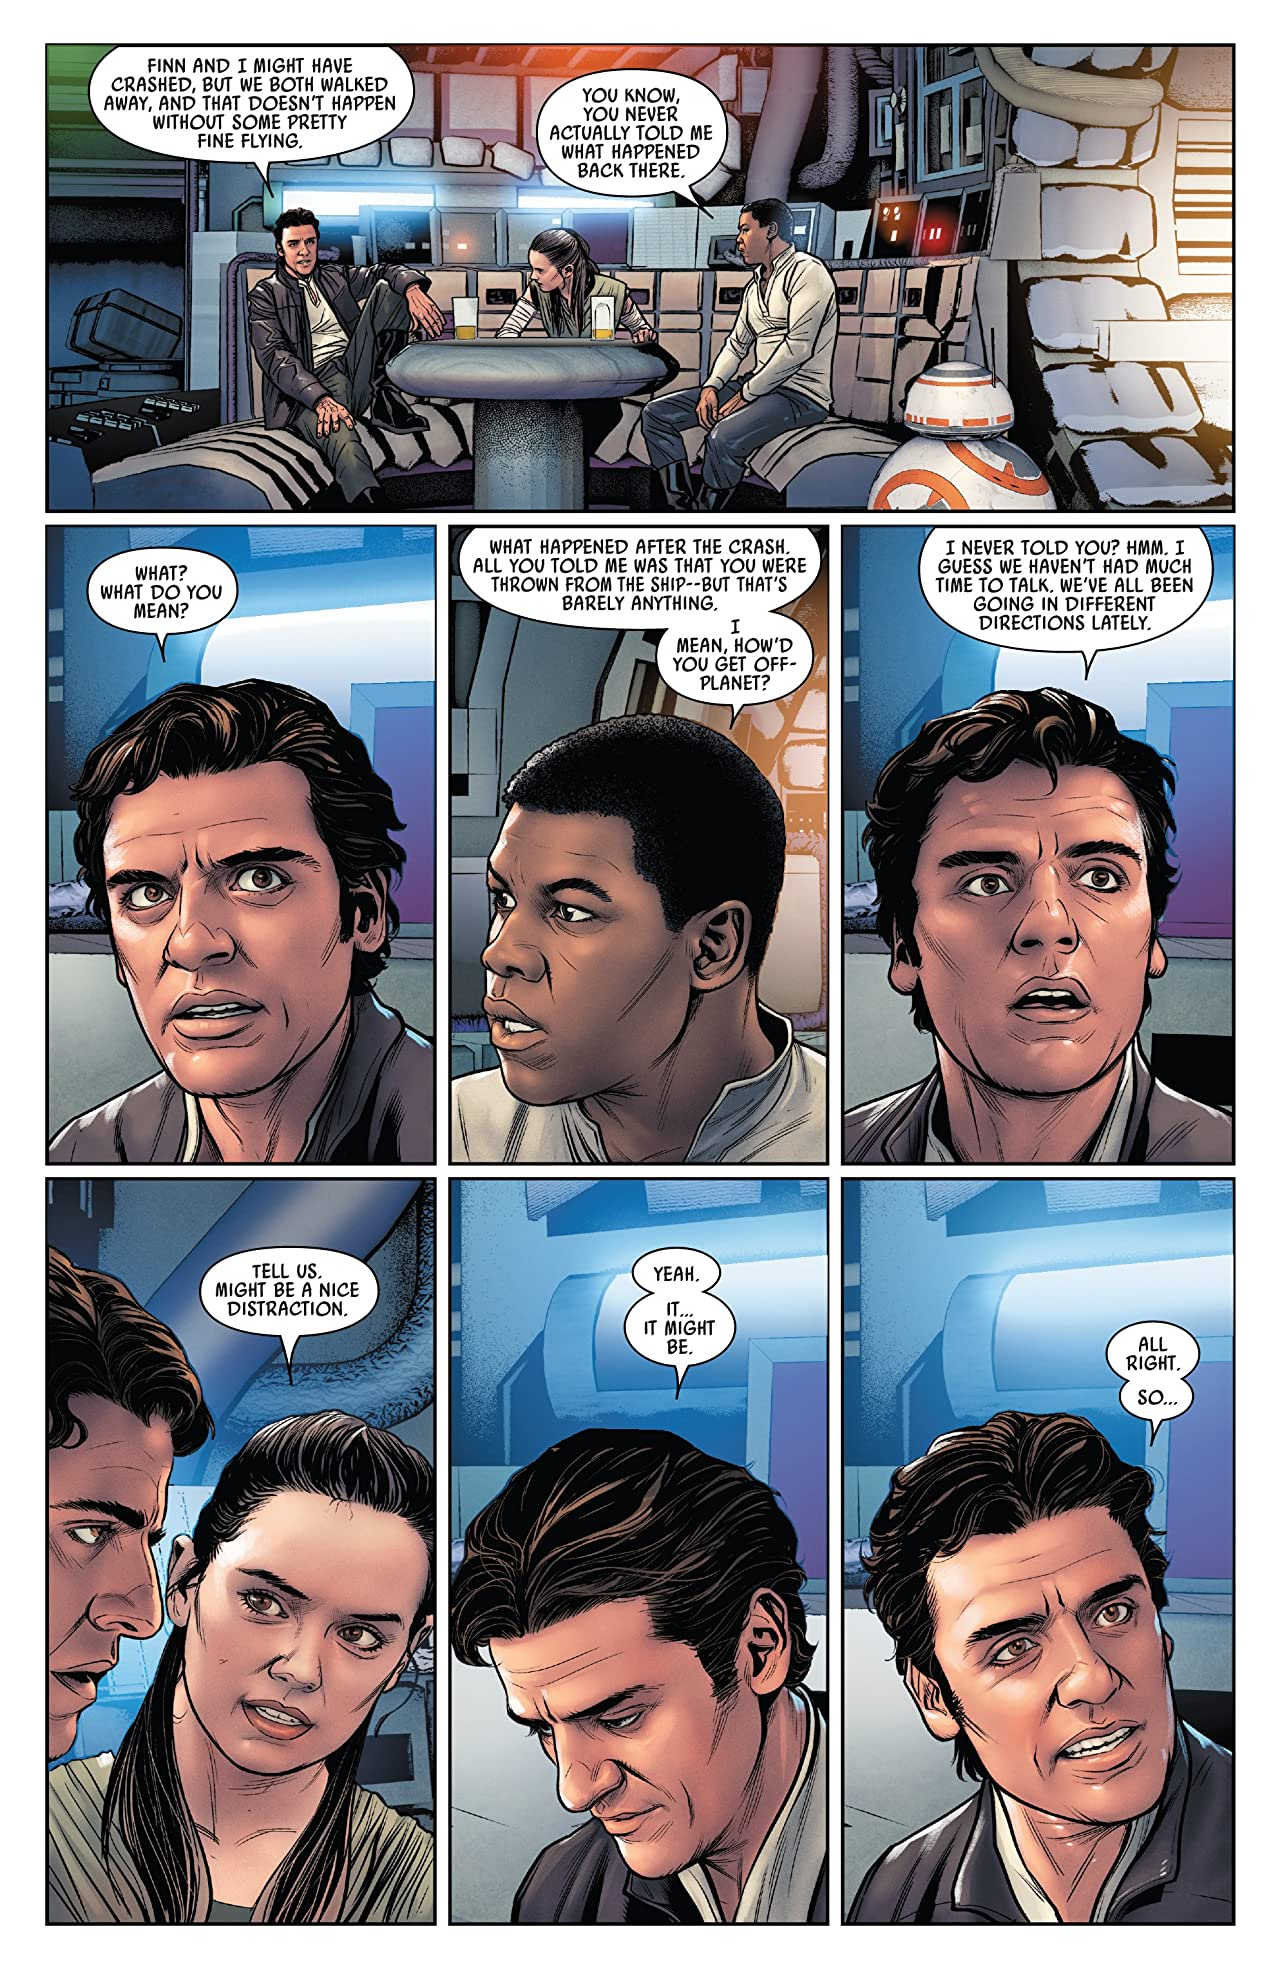 Star Wars: Poe Dameron Vol. 5: The Spark And The Fire